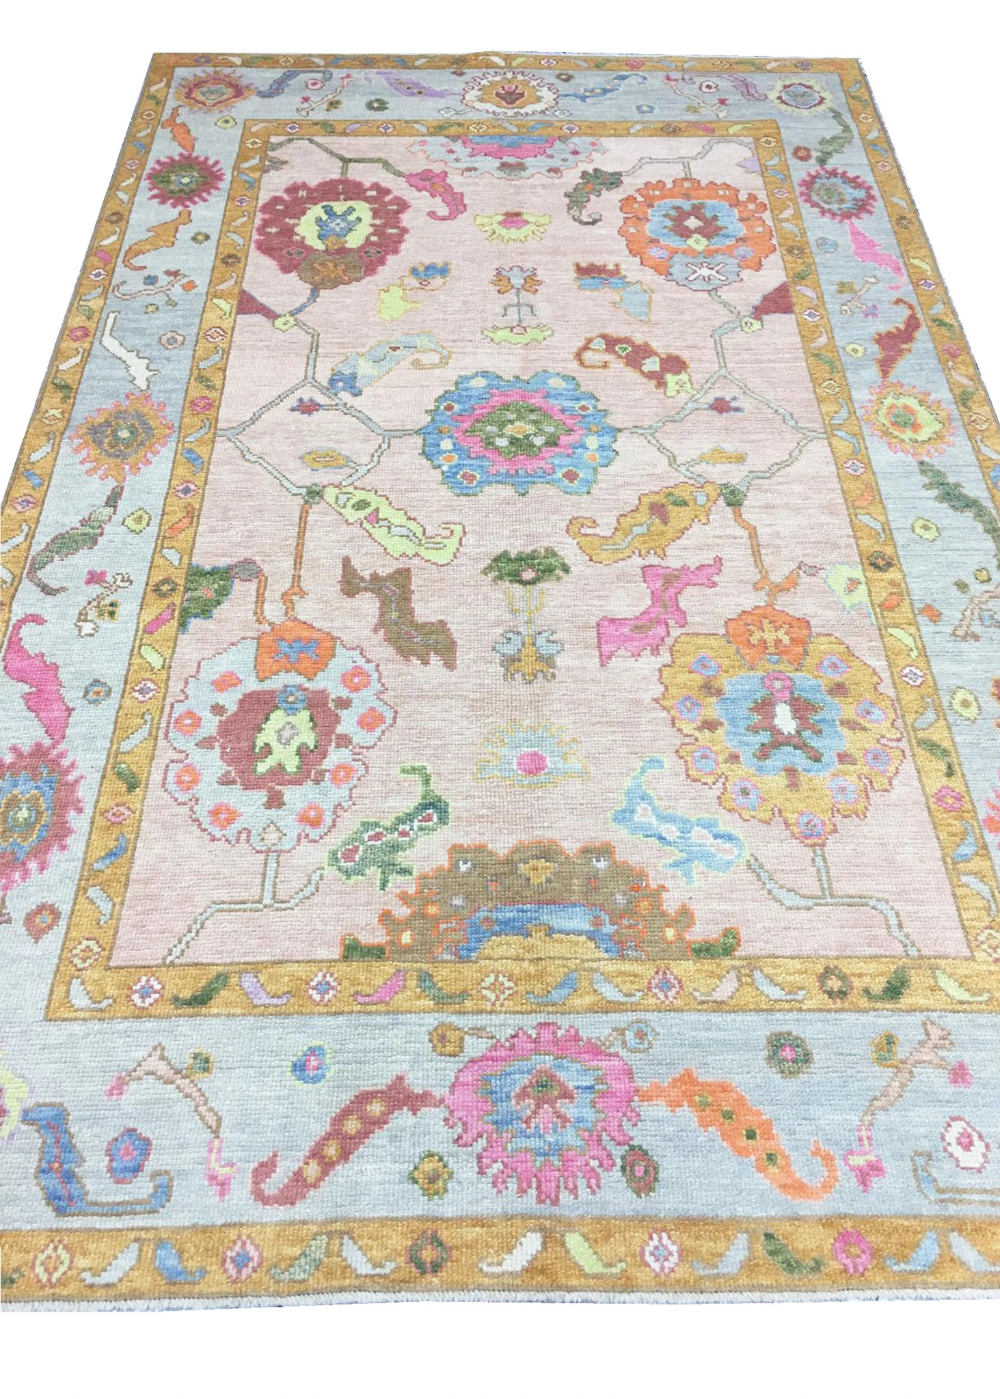 Hand Knotted Oushak Area Rug 18 In 2020 Area Rug Collections Area Rugs Rugs